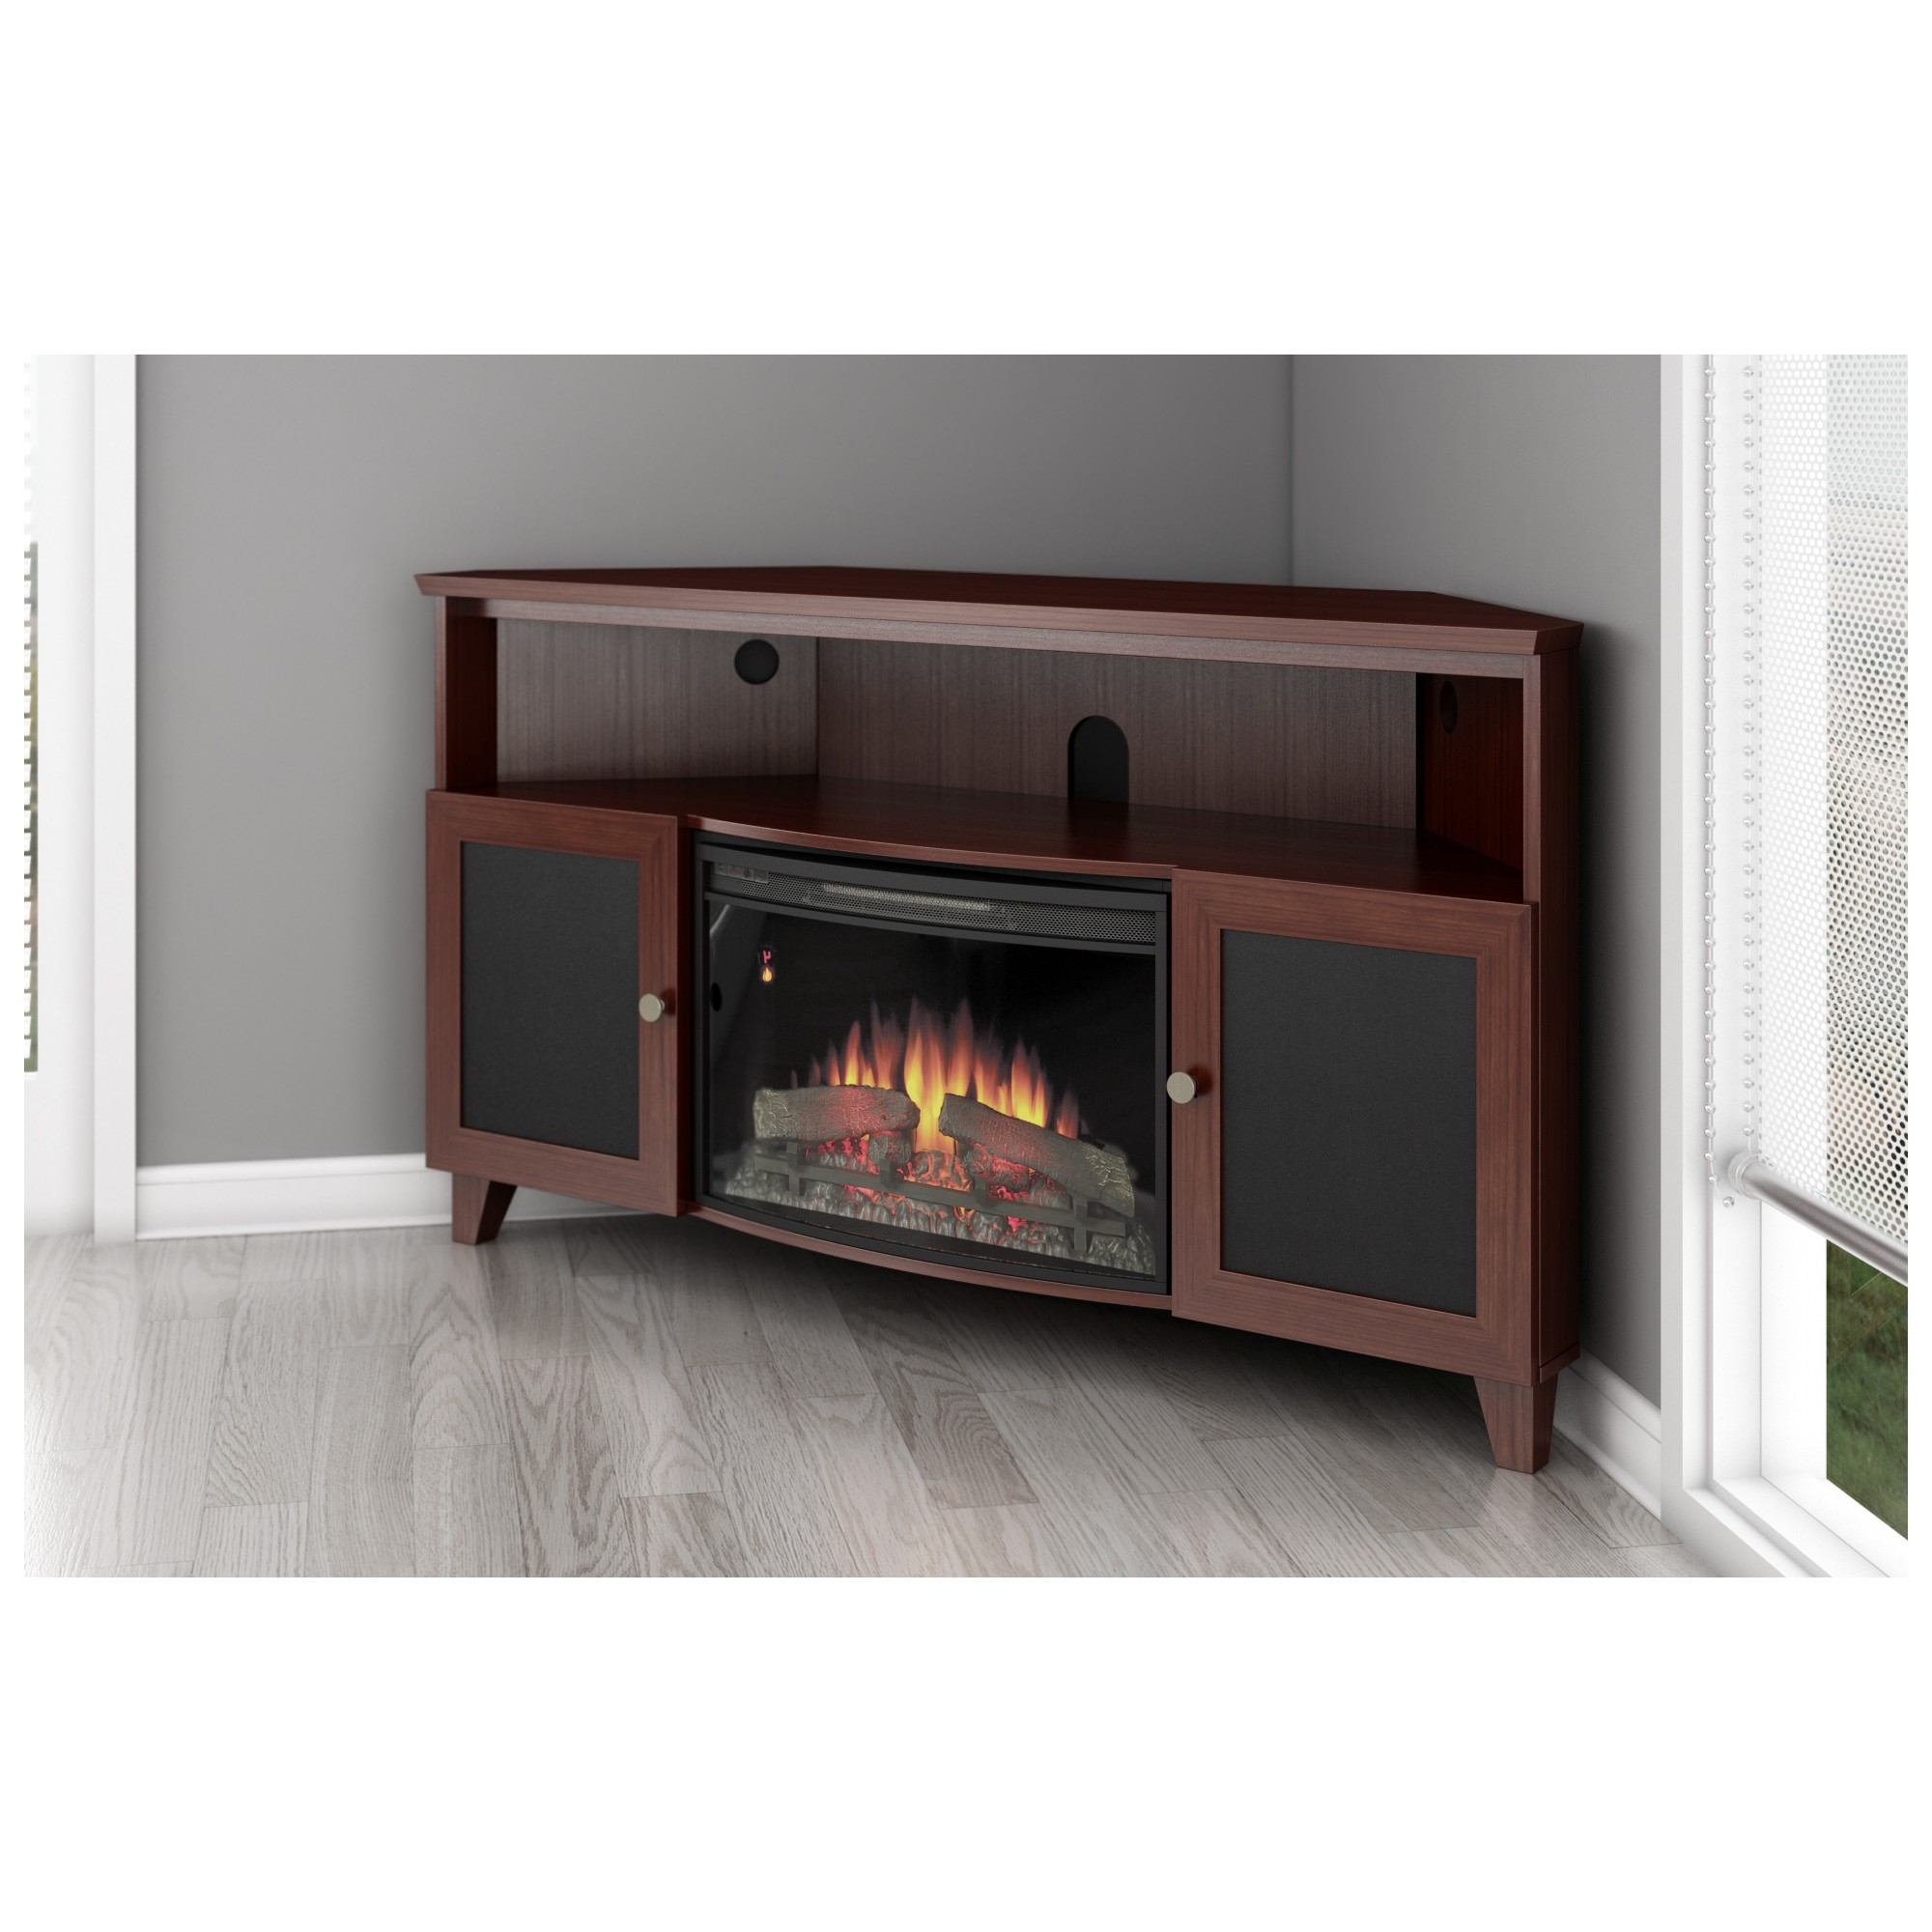 Furniture: Captivating Tv Stand With Fireplace For Living Room In Trendy Corner Tv Stands For 60 Inch Tv (View 15 of 20)